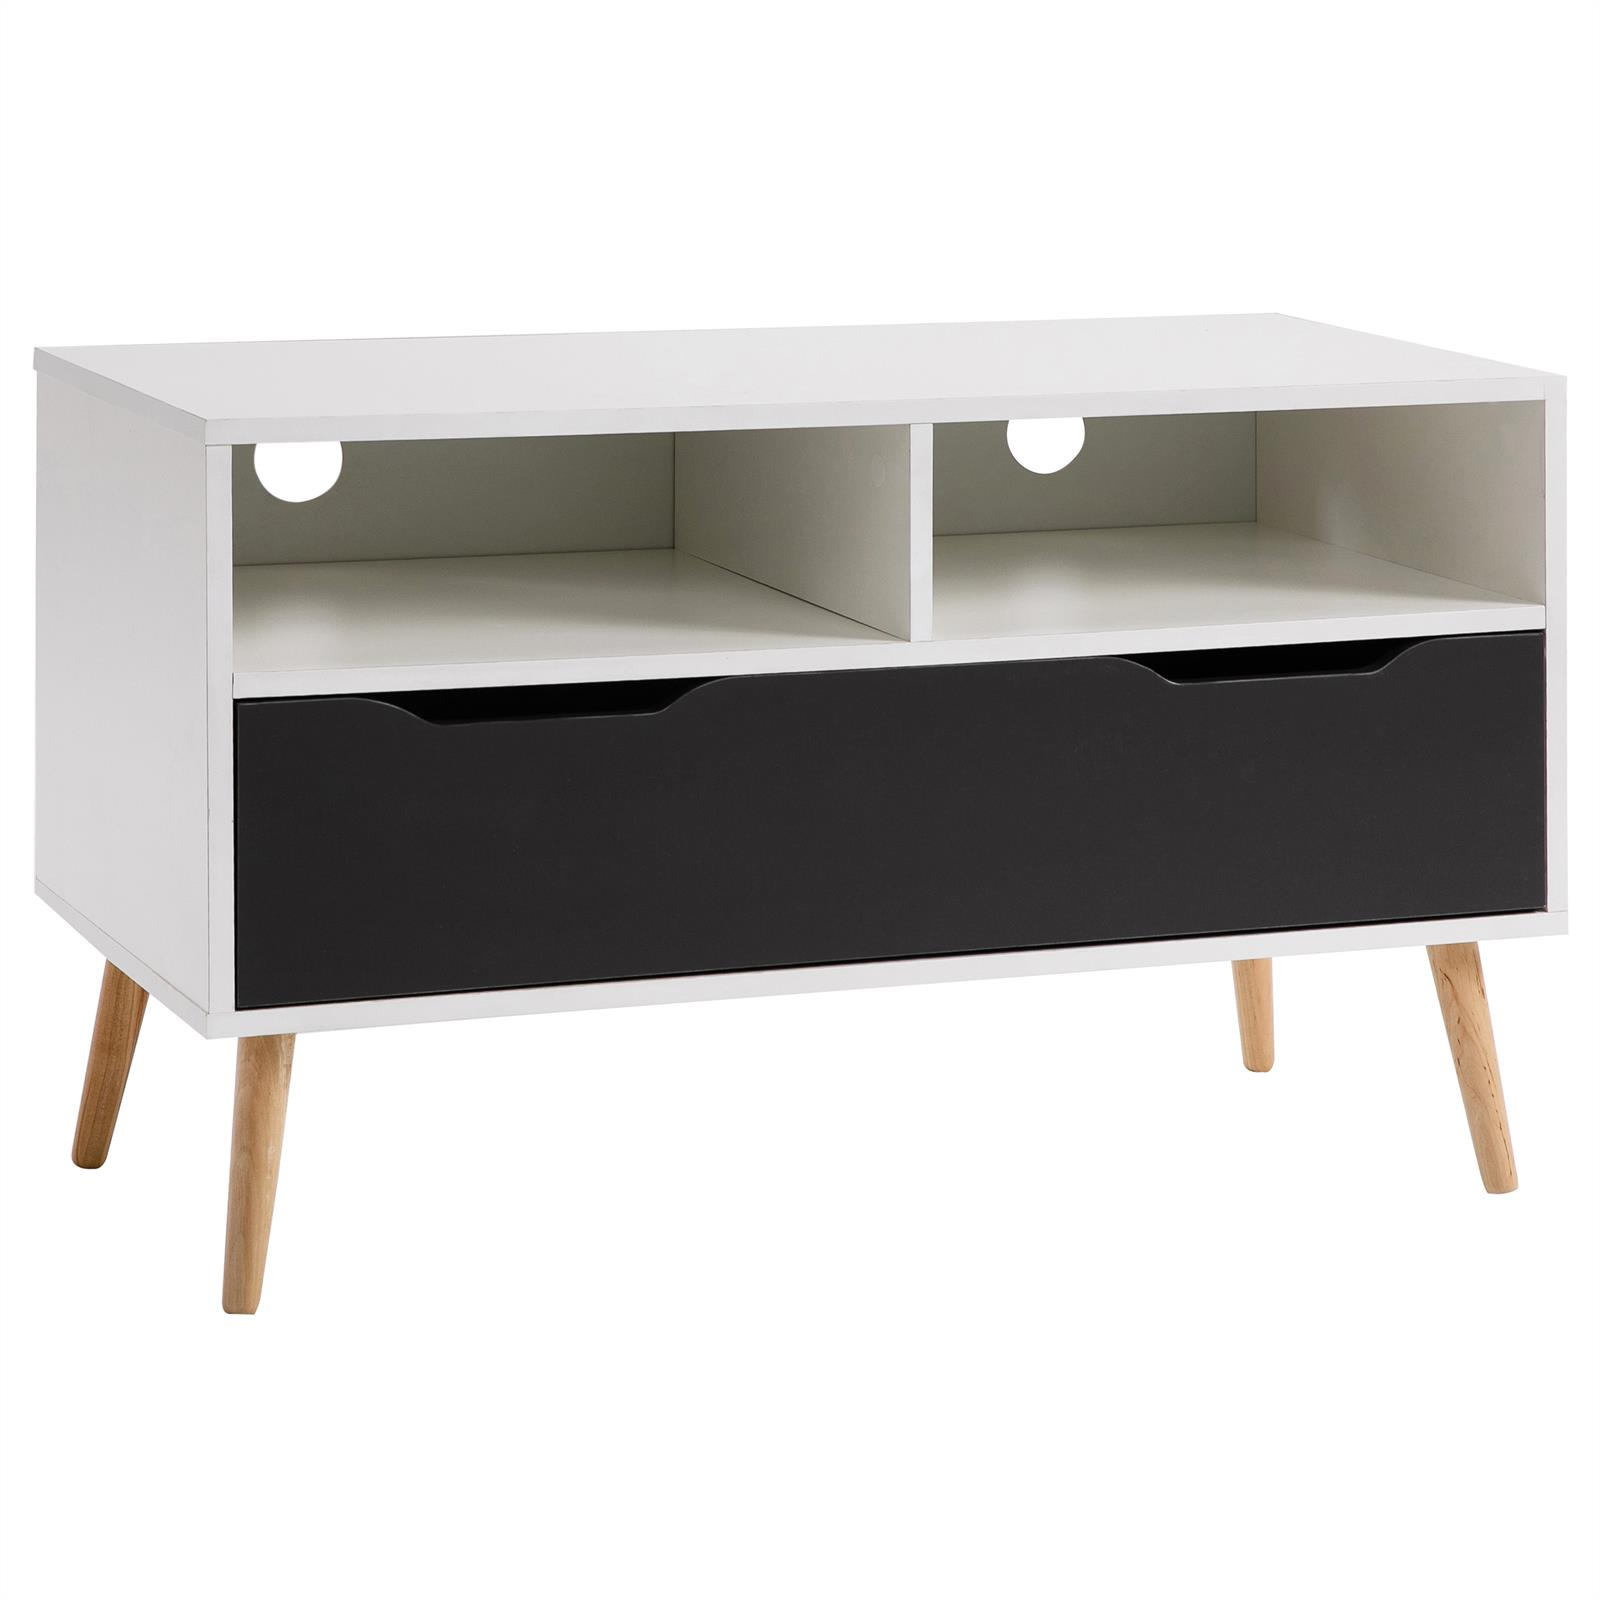 tv rack hifi m bel lowboard fernsetisch schrank wei grau. Black Bedroom Furniture Sets. Home Design Ideas